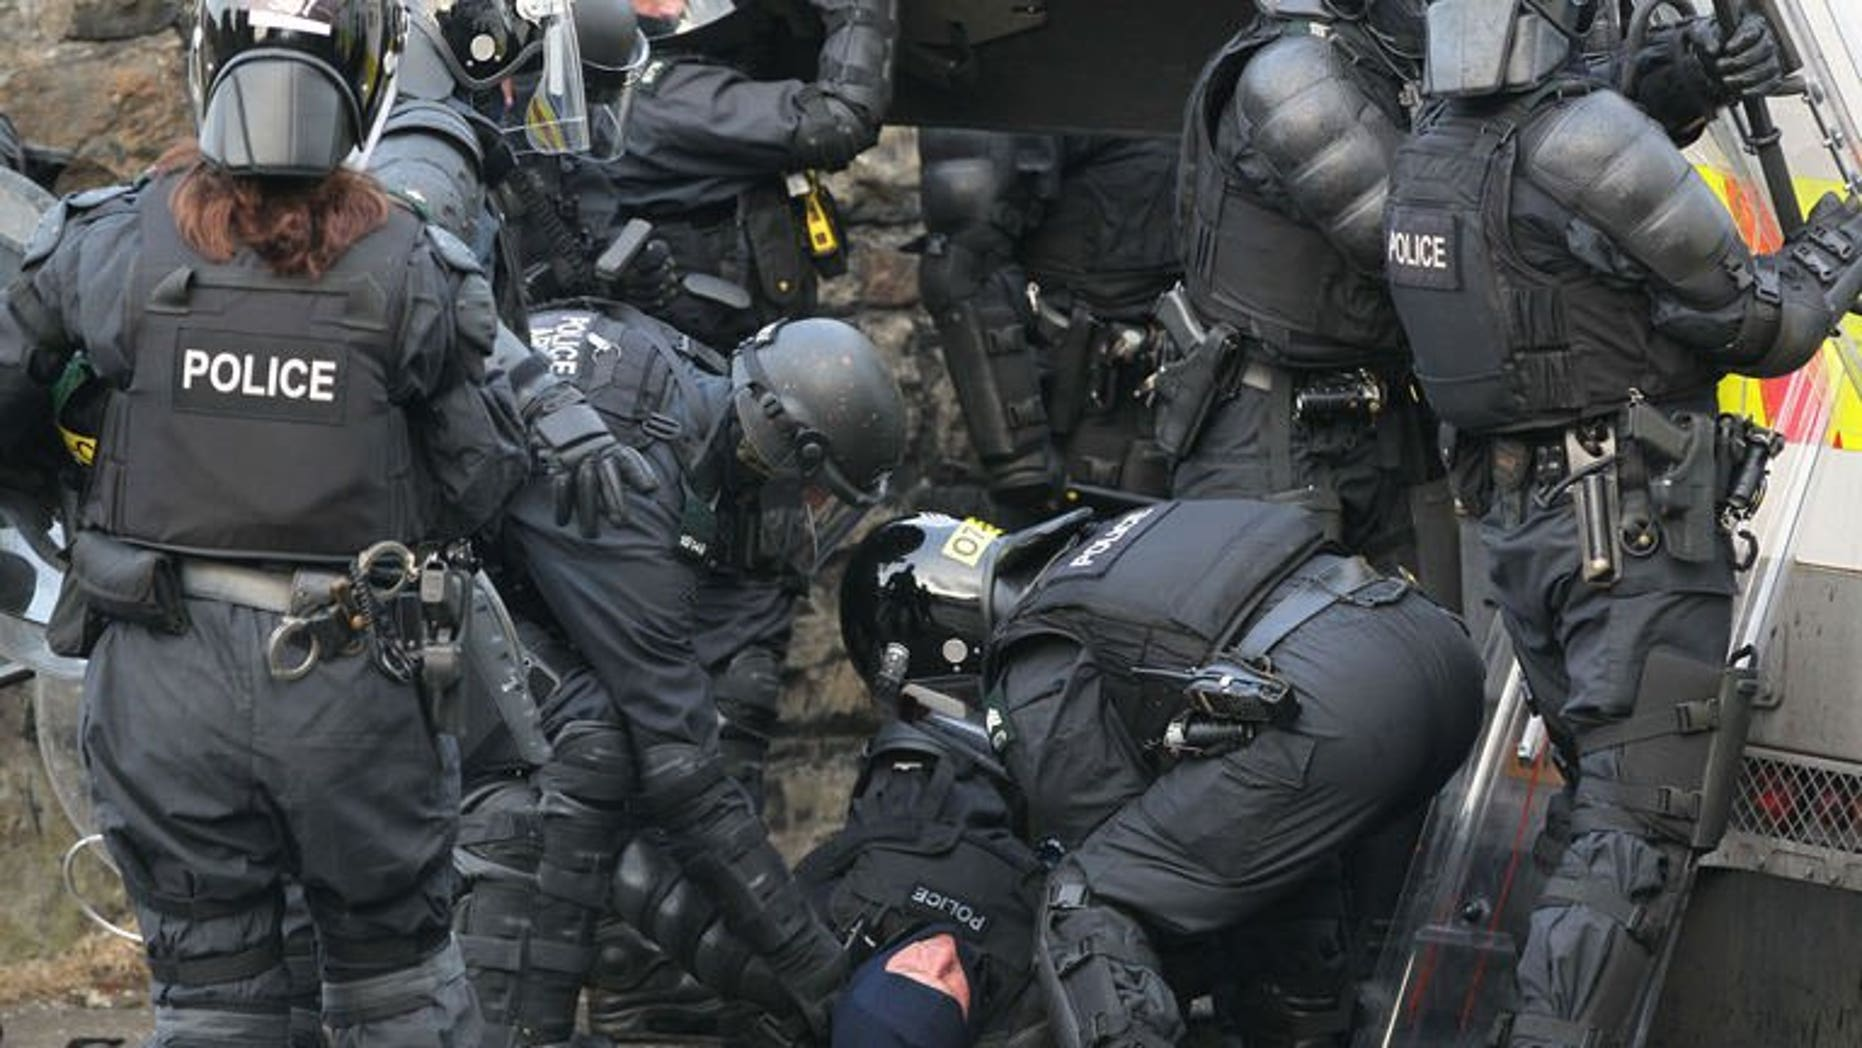 An injured policeman is carried away during clashes with Orangemen protesters in north Belfast, Northern Ireland, on July 12, 2013. Hundreds of extra police have been deployed to Northern Ireland following a night of rioting in Belfast that left 32 officers injured and a politician hospitalised.